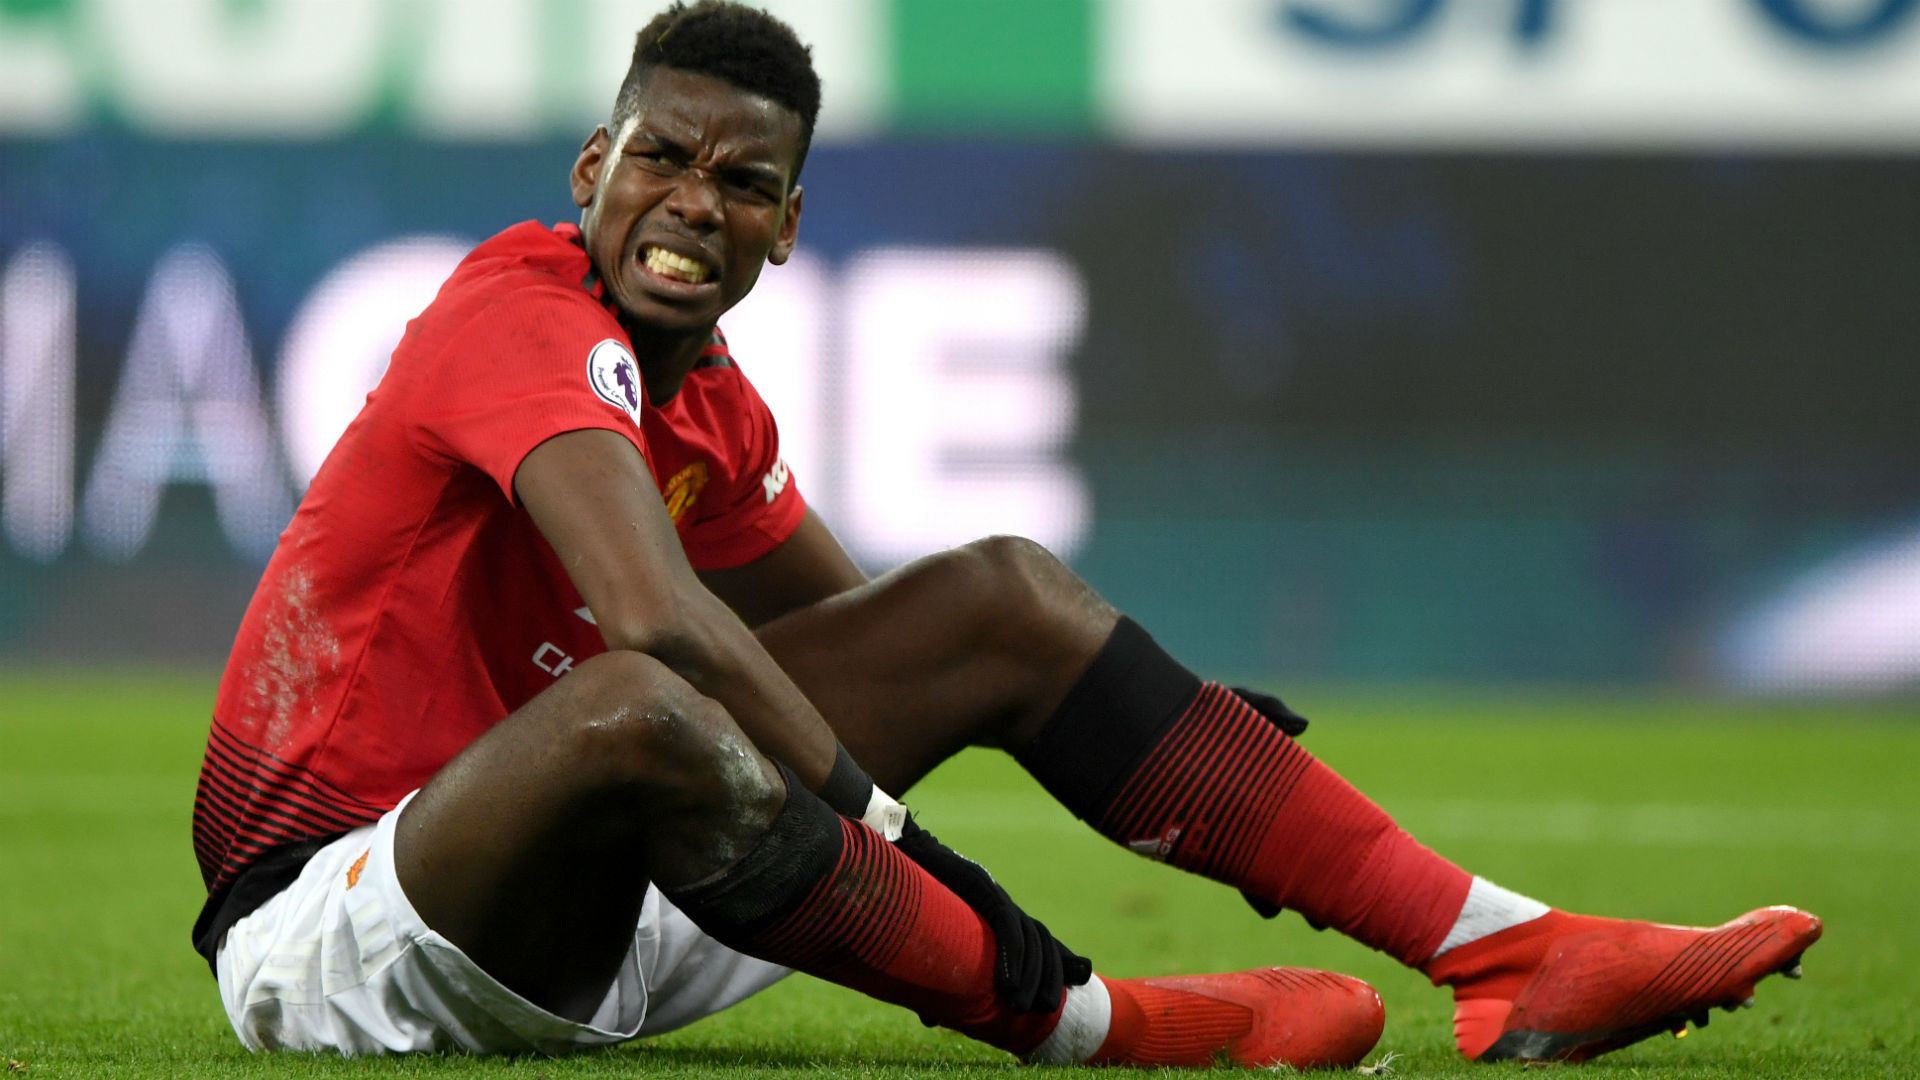 Pogba fit after knee injury, Lukaku on the bench again